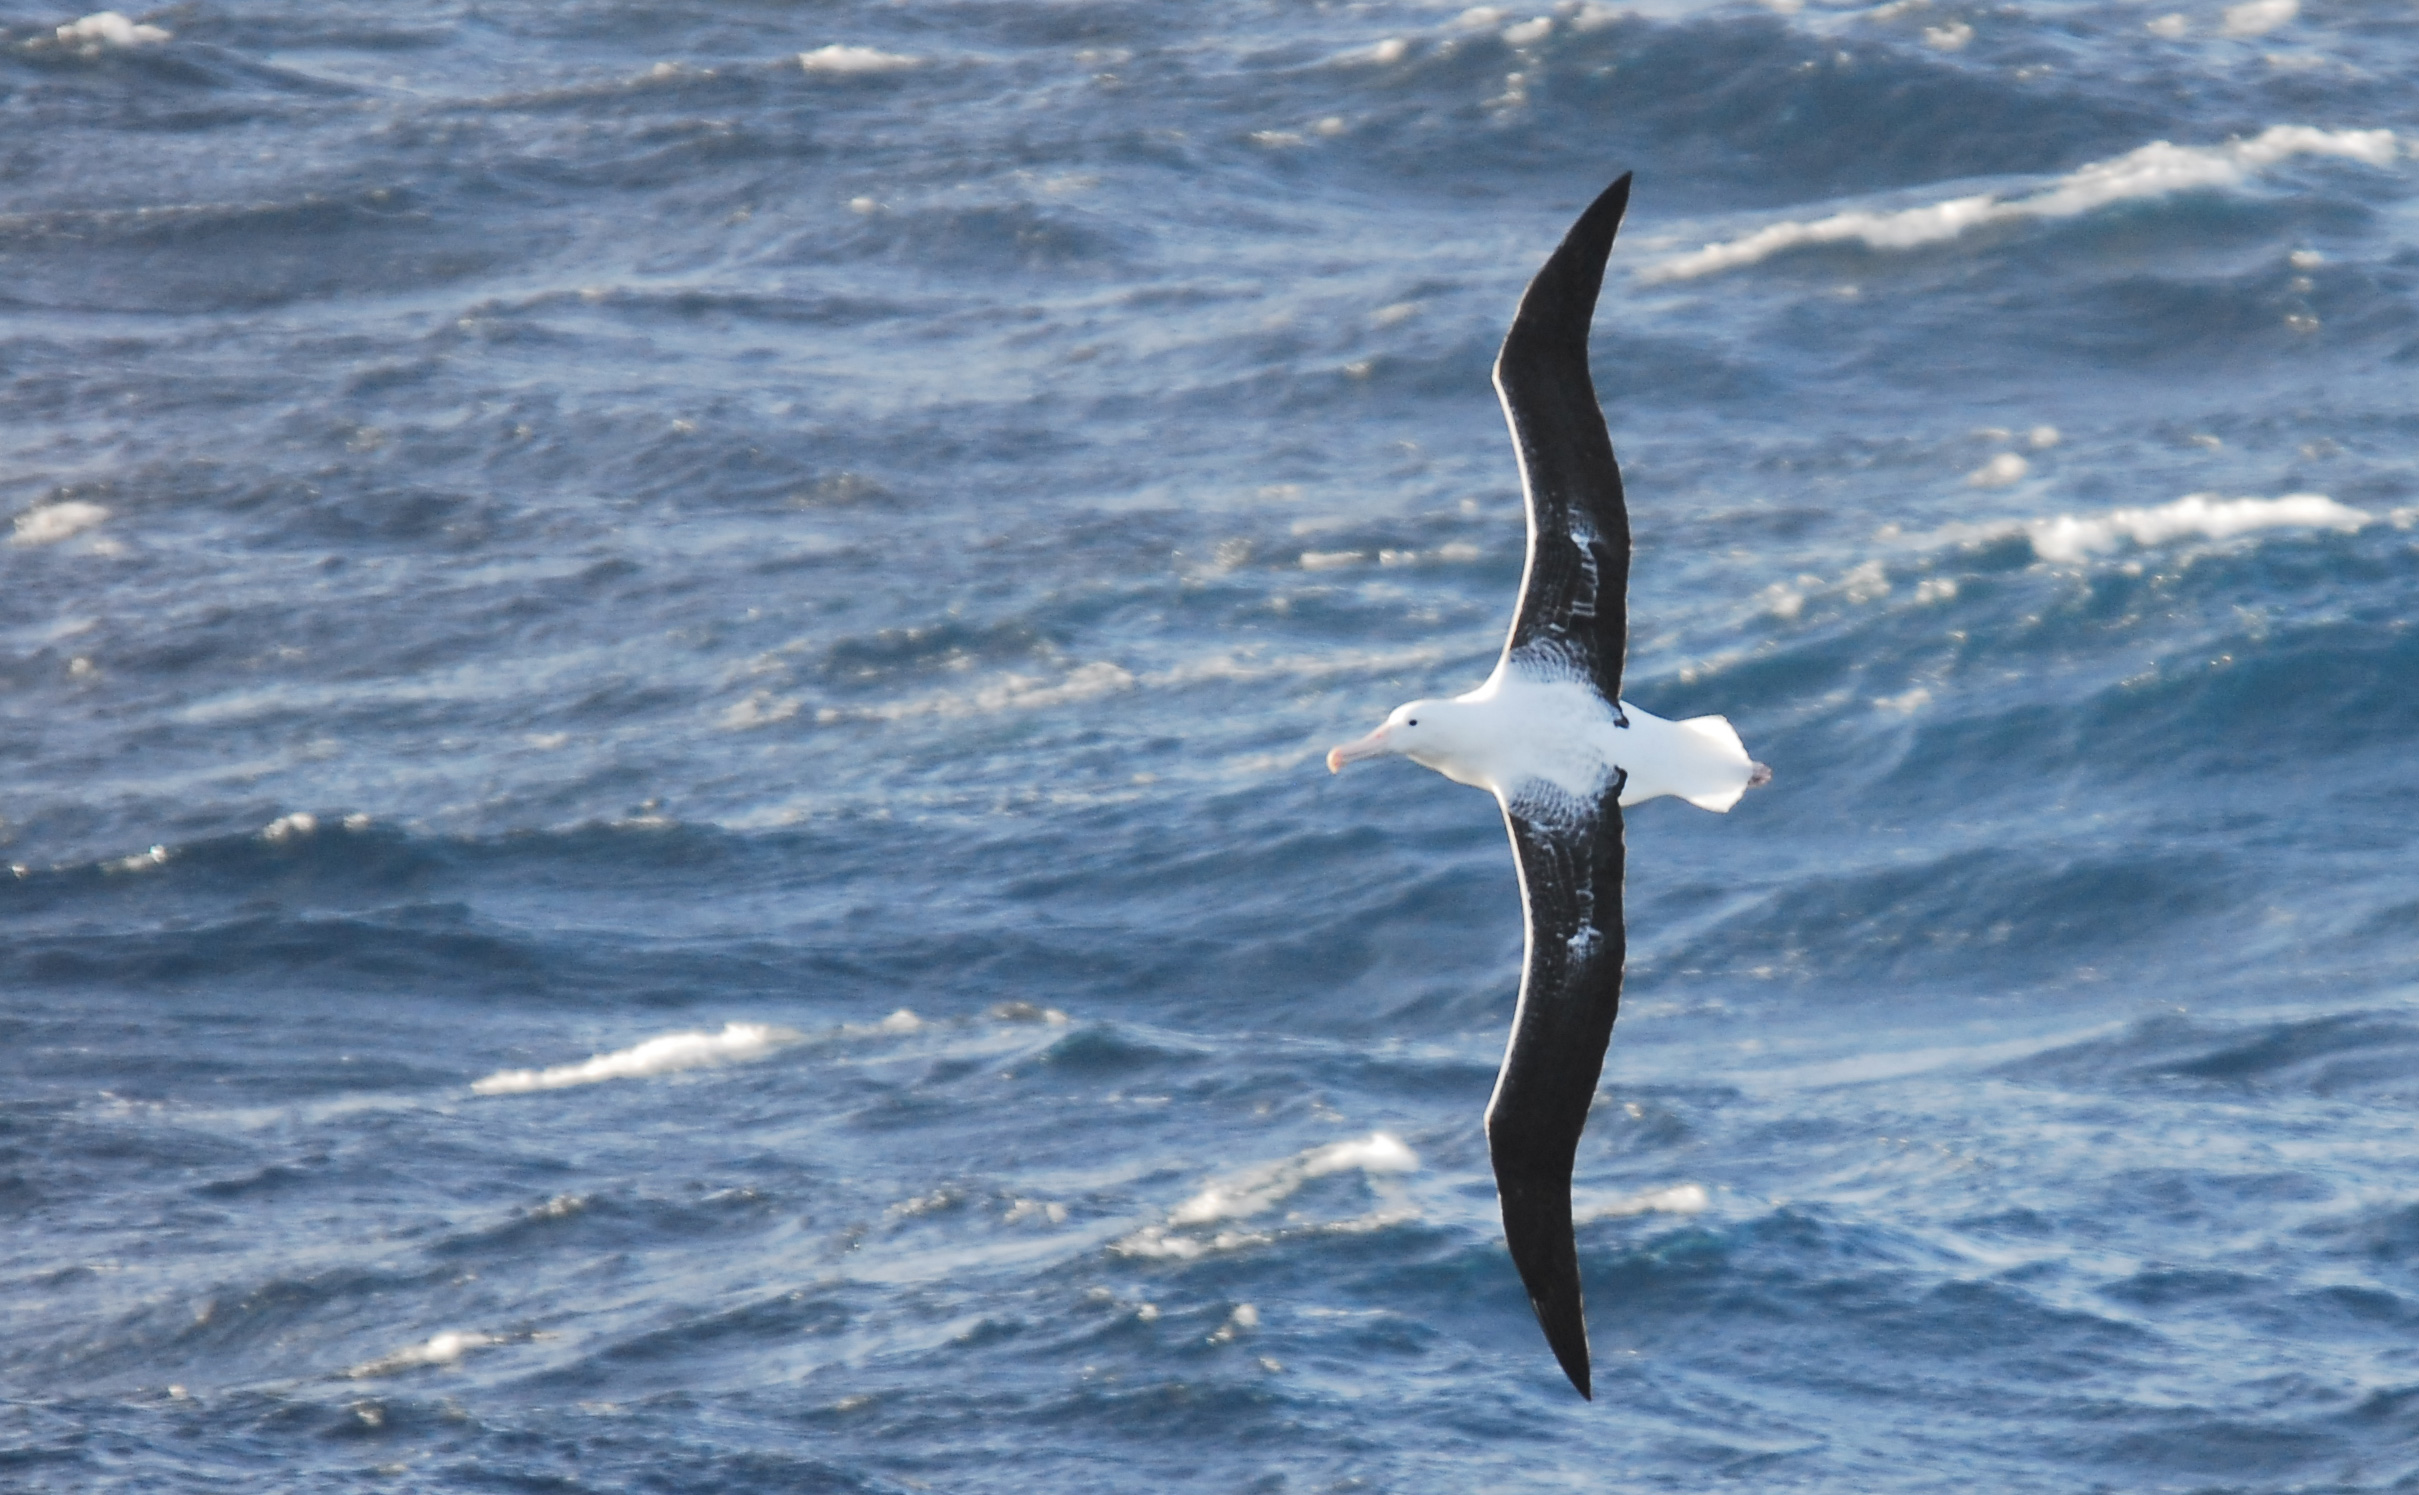 Bird flying over the ocean